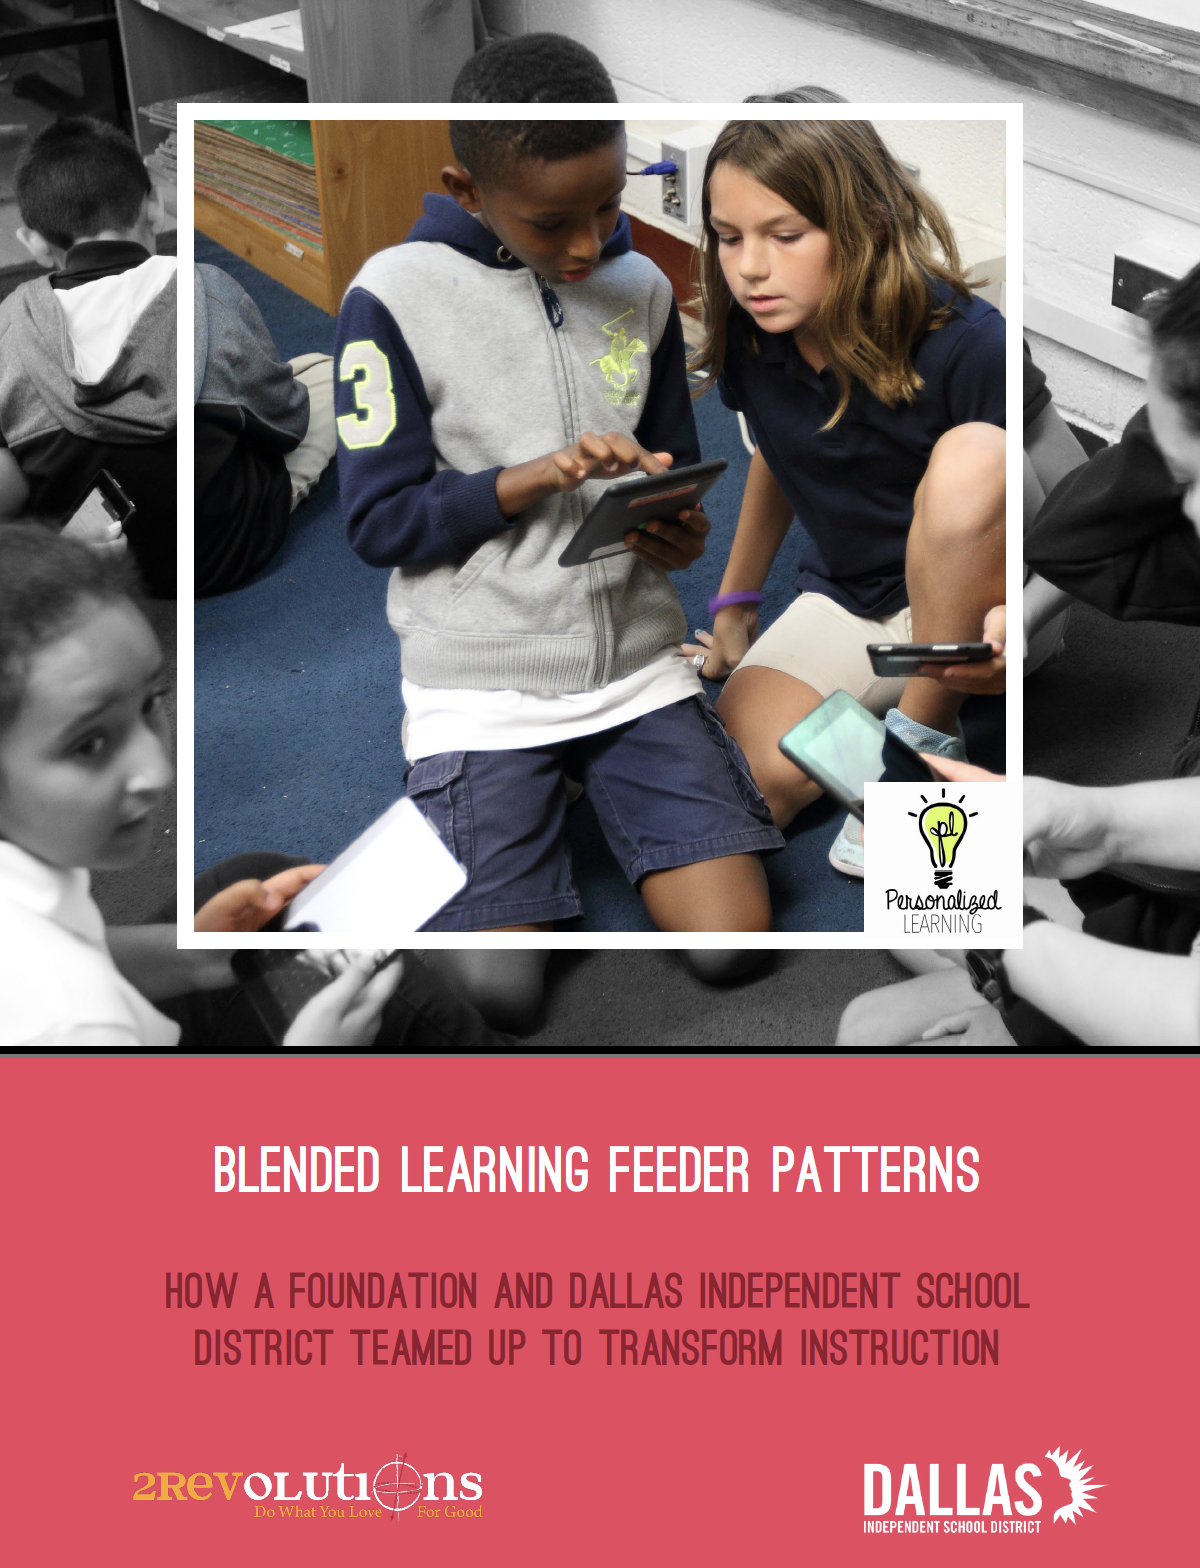 Dallas Independent School District Storytelling